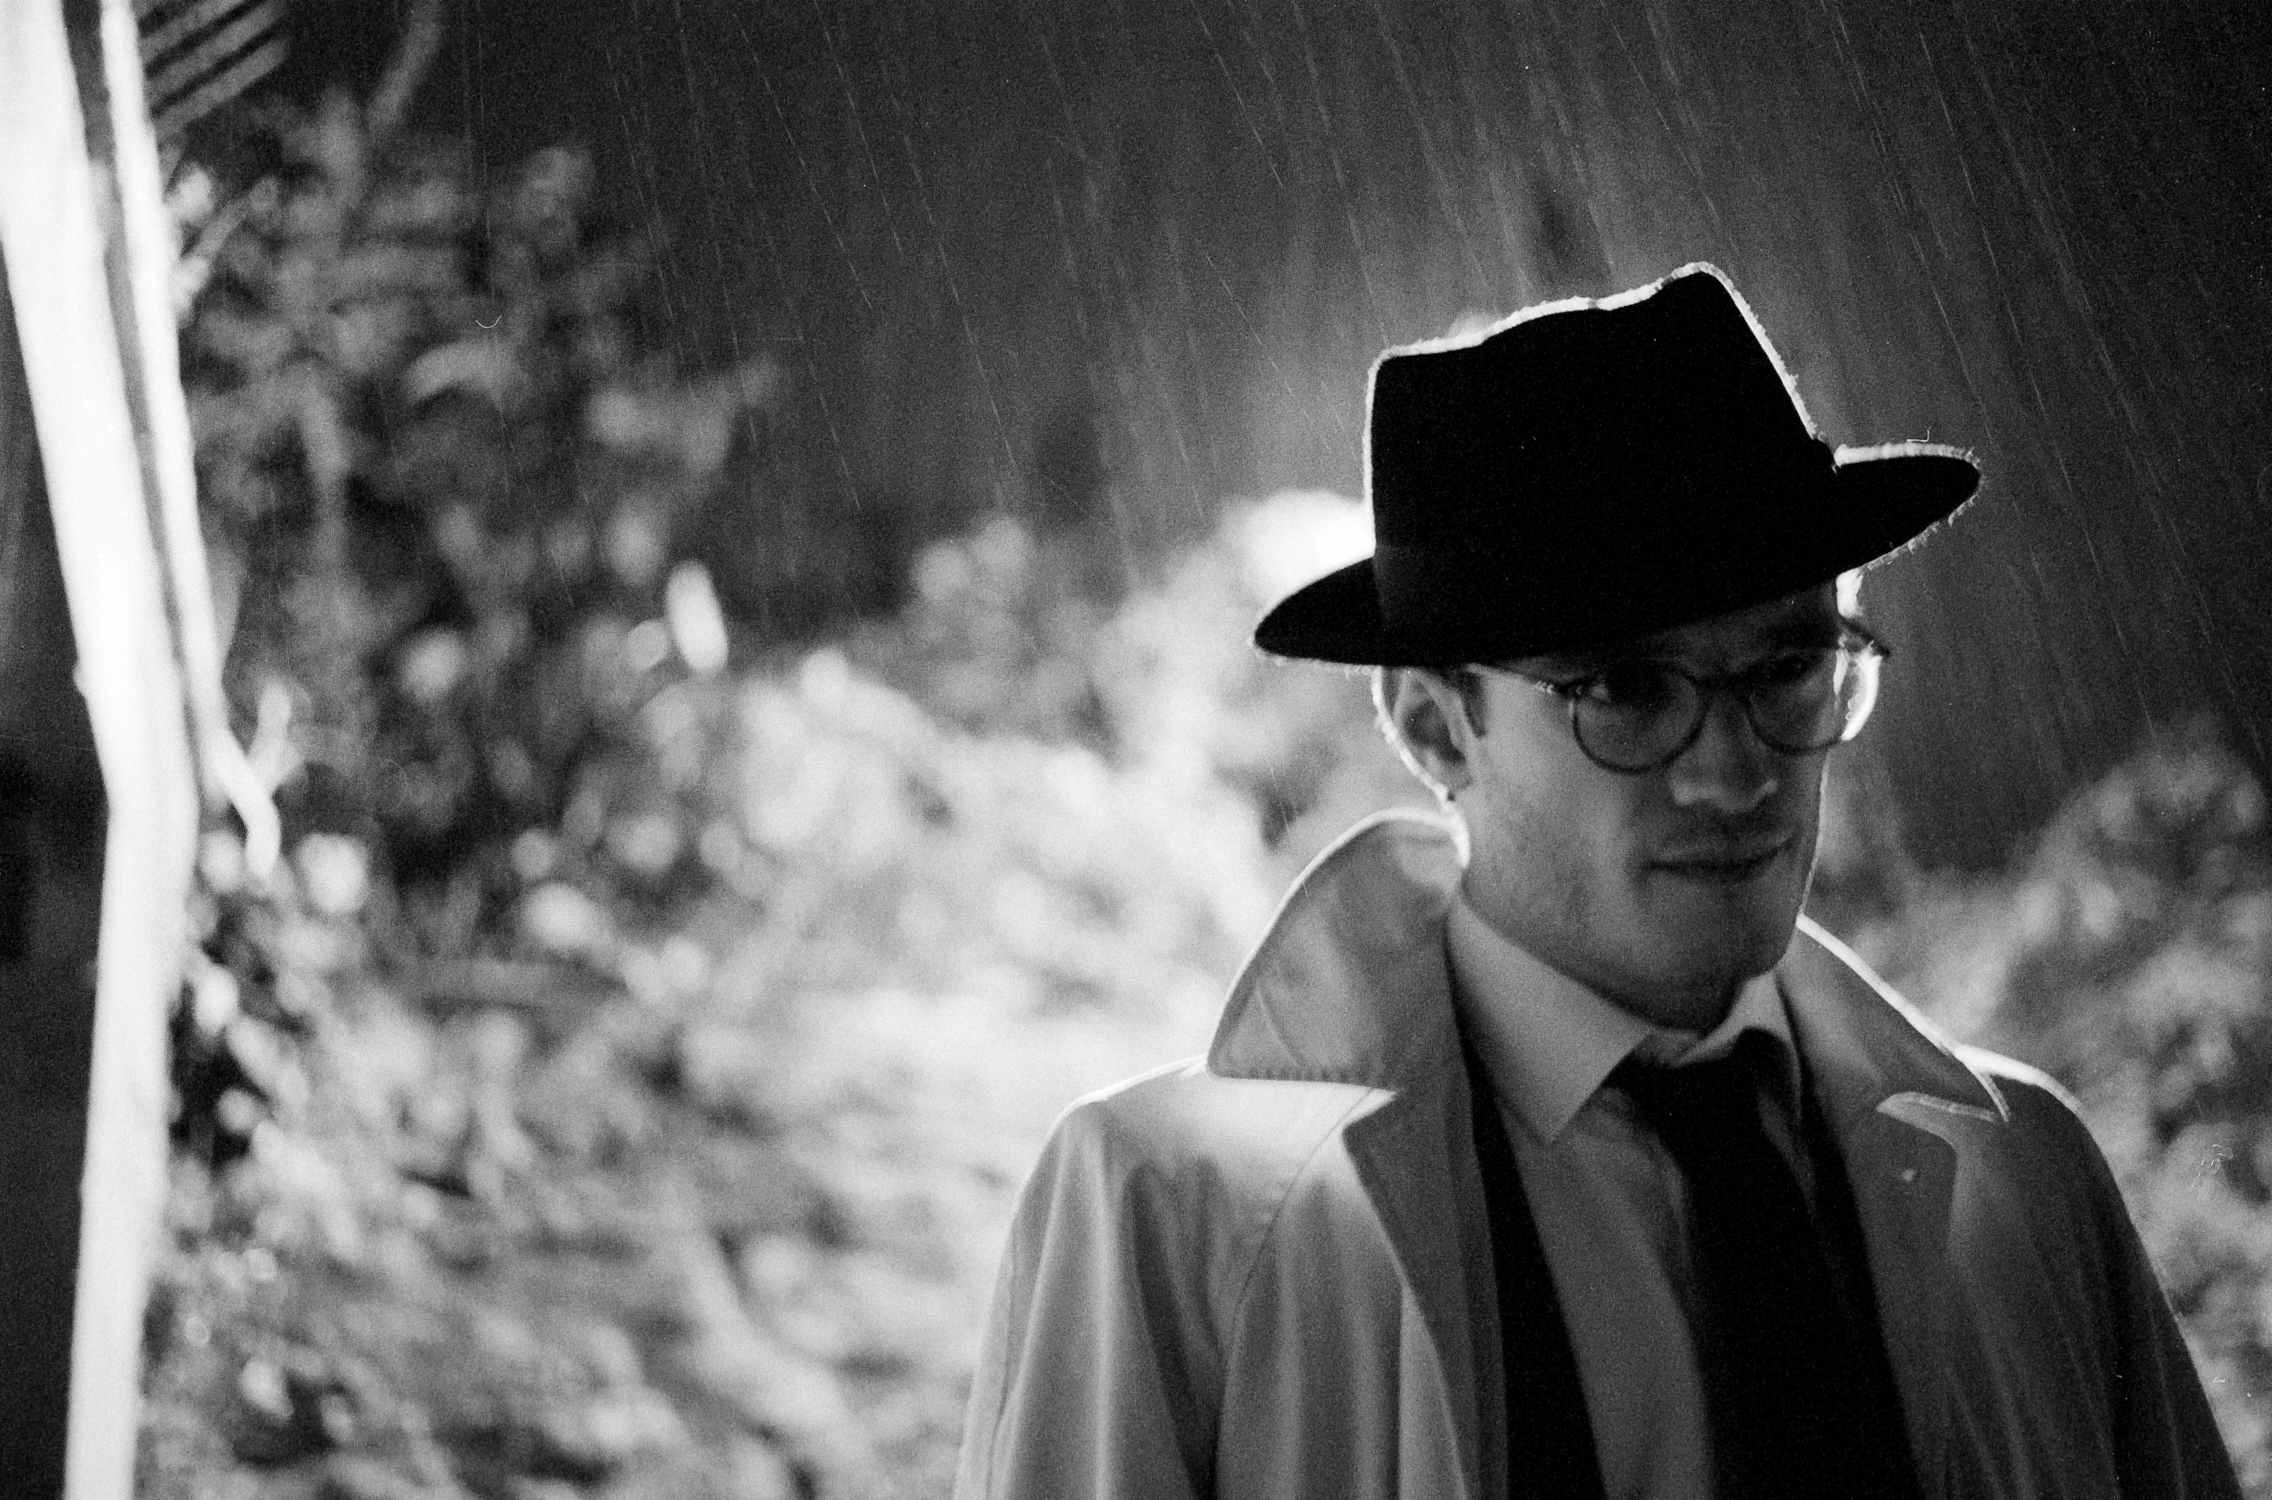 Spy character on rainy street (Pic: Stephen Dowling)